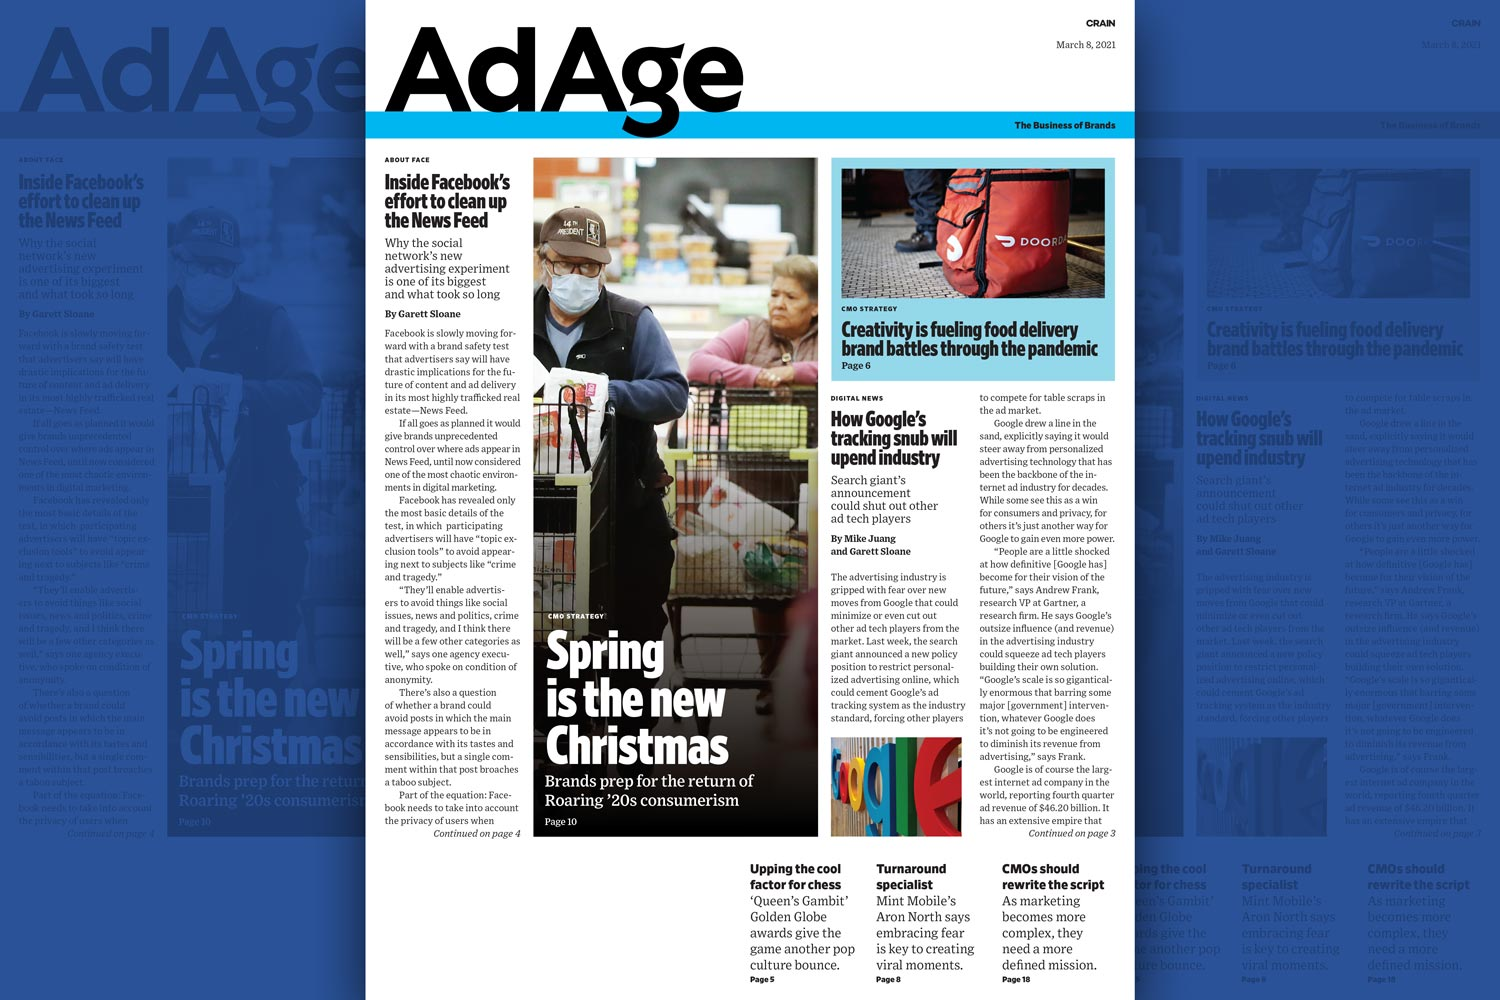 Facebook's News Feed Cleanup and Google's Tracking Snub: Ad Age Digital Edition